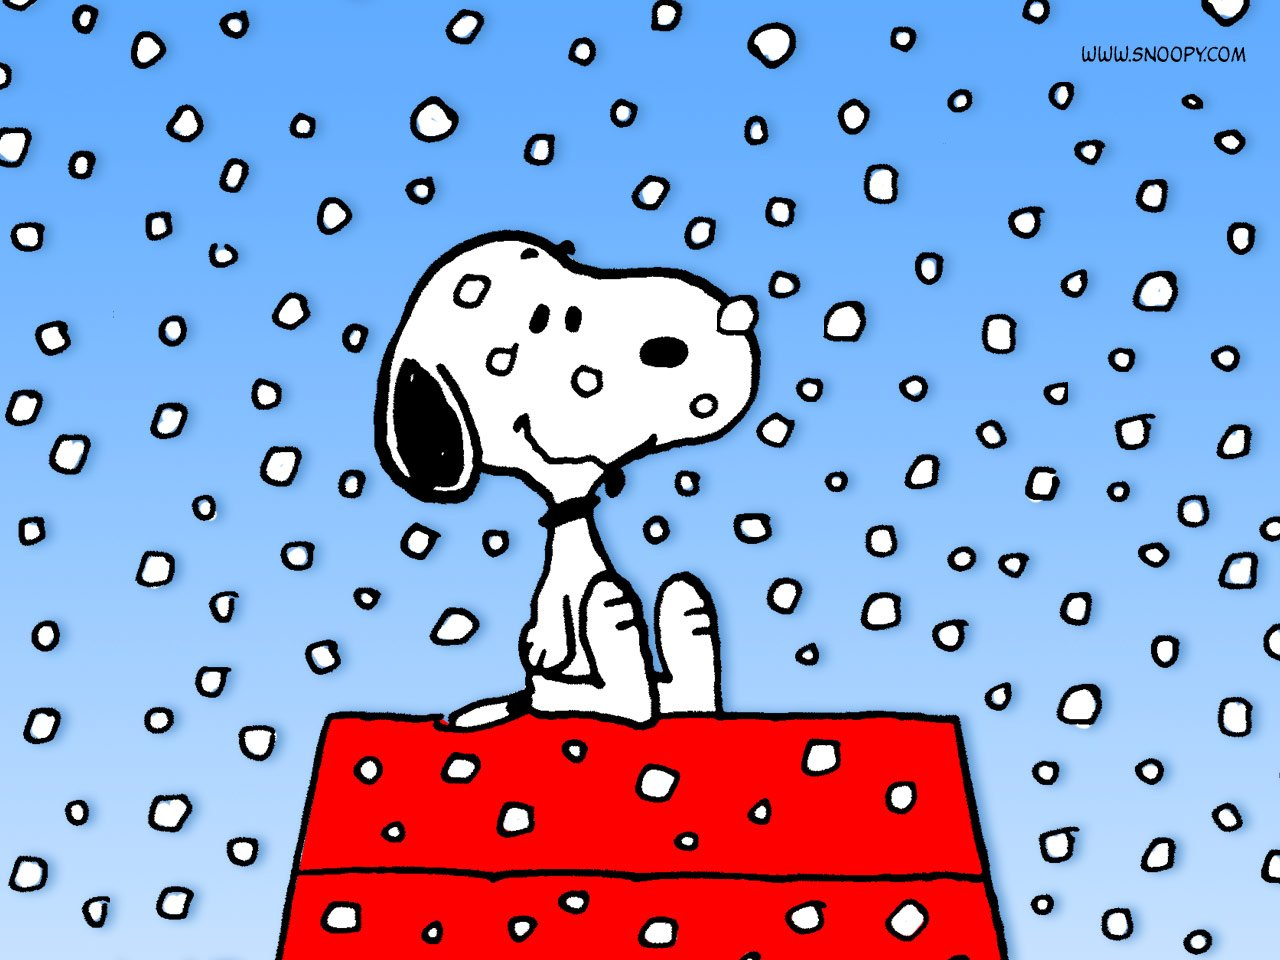 Snoopy Christmas   Peanuts Wallpaper 452772 1280x960